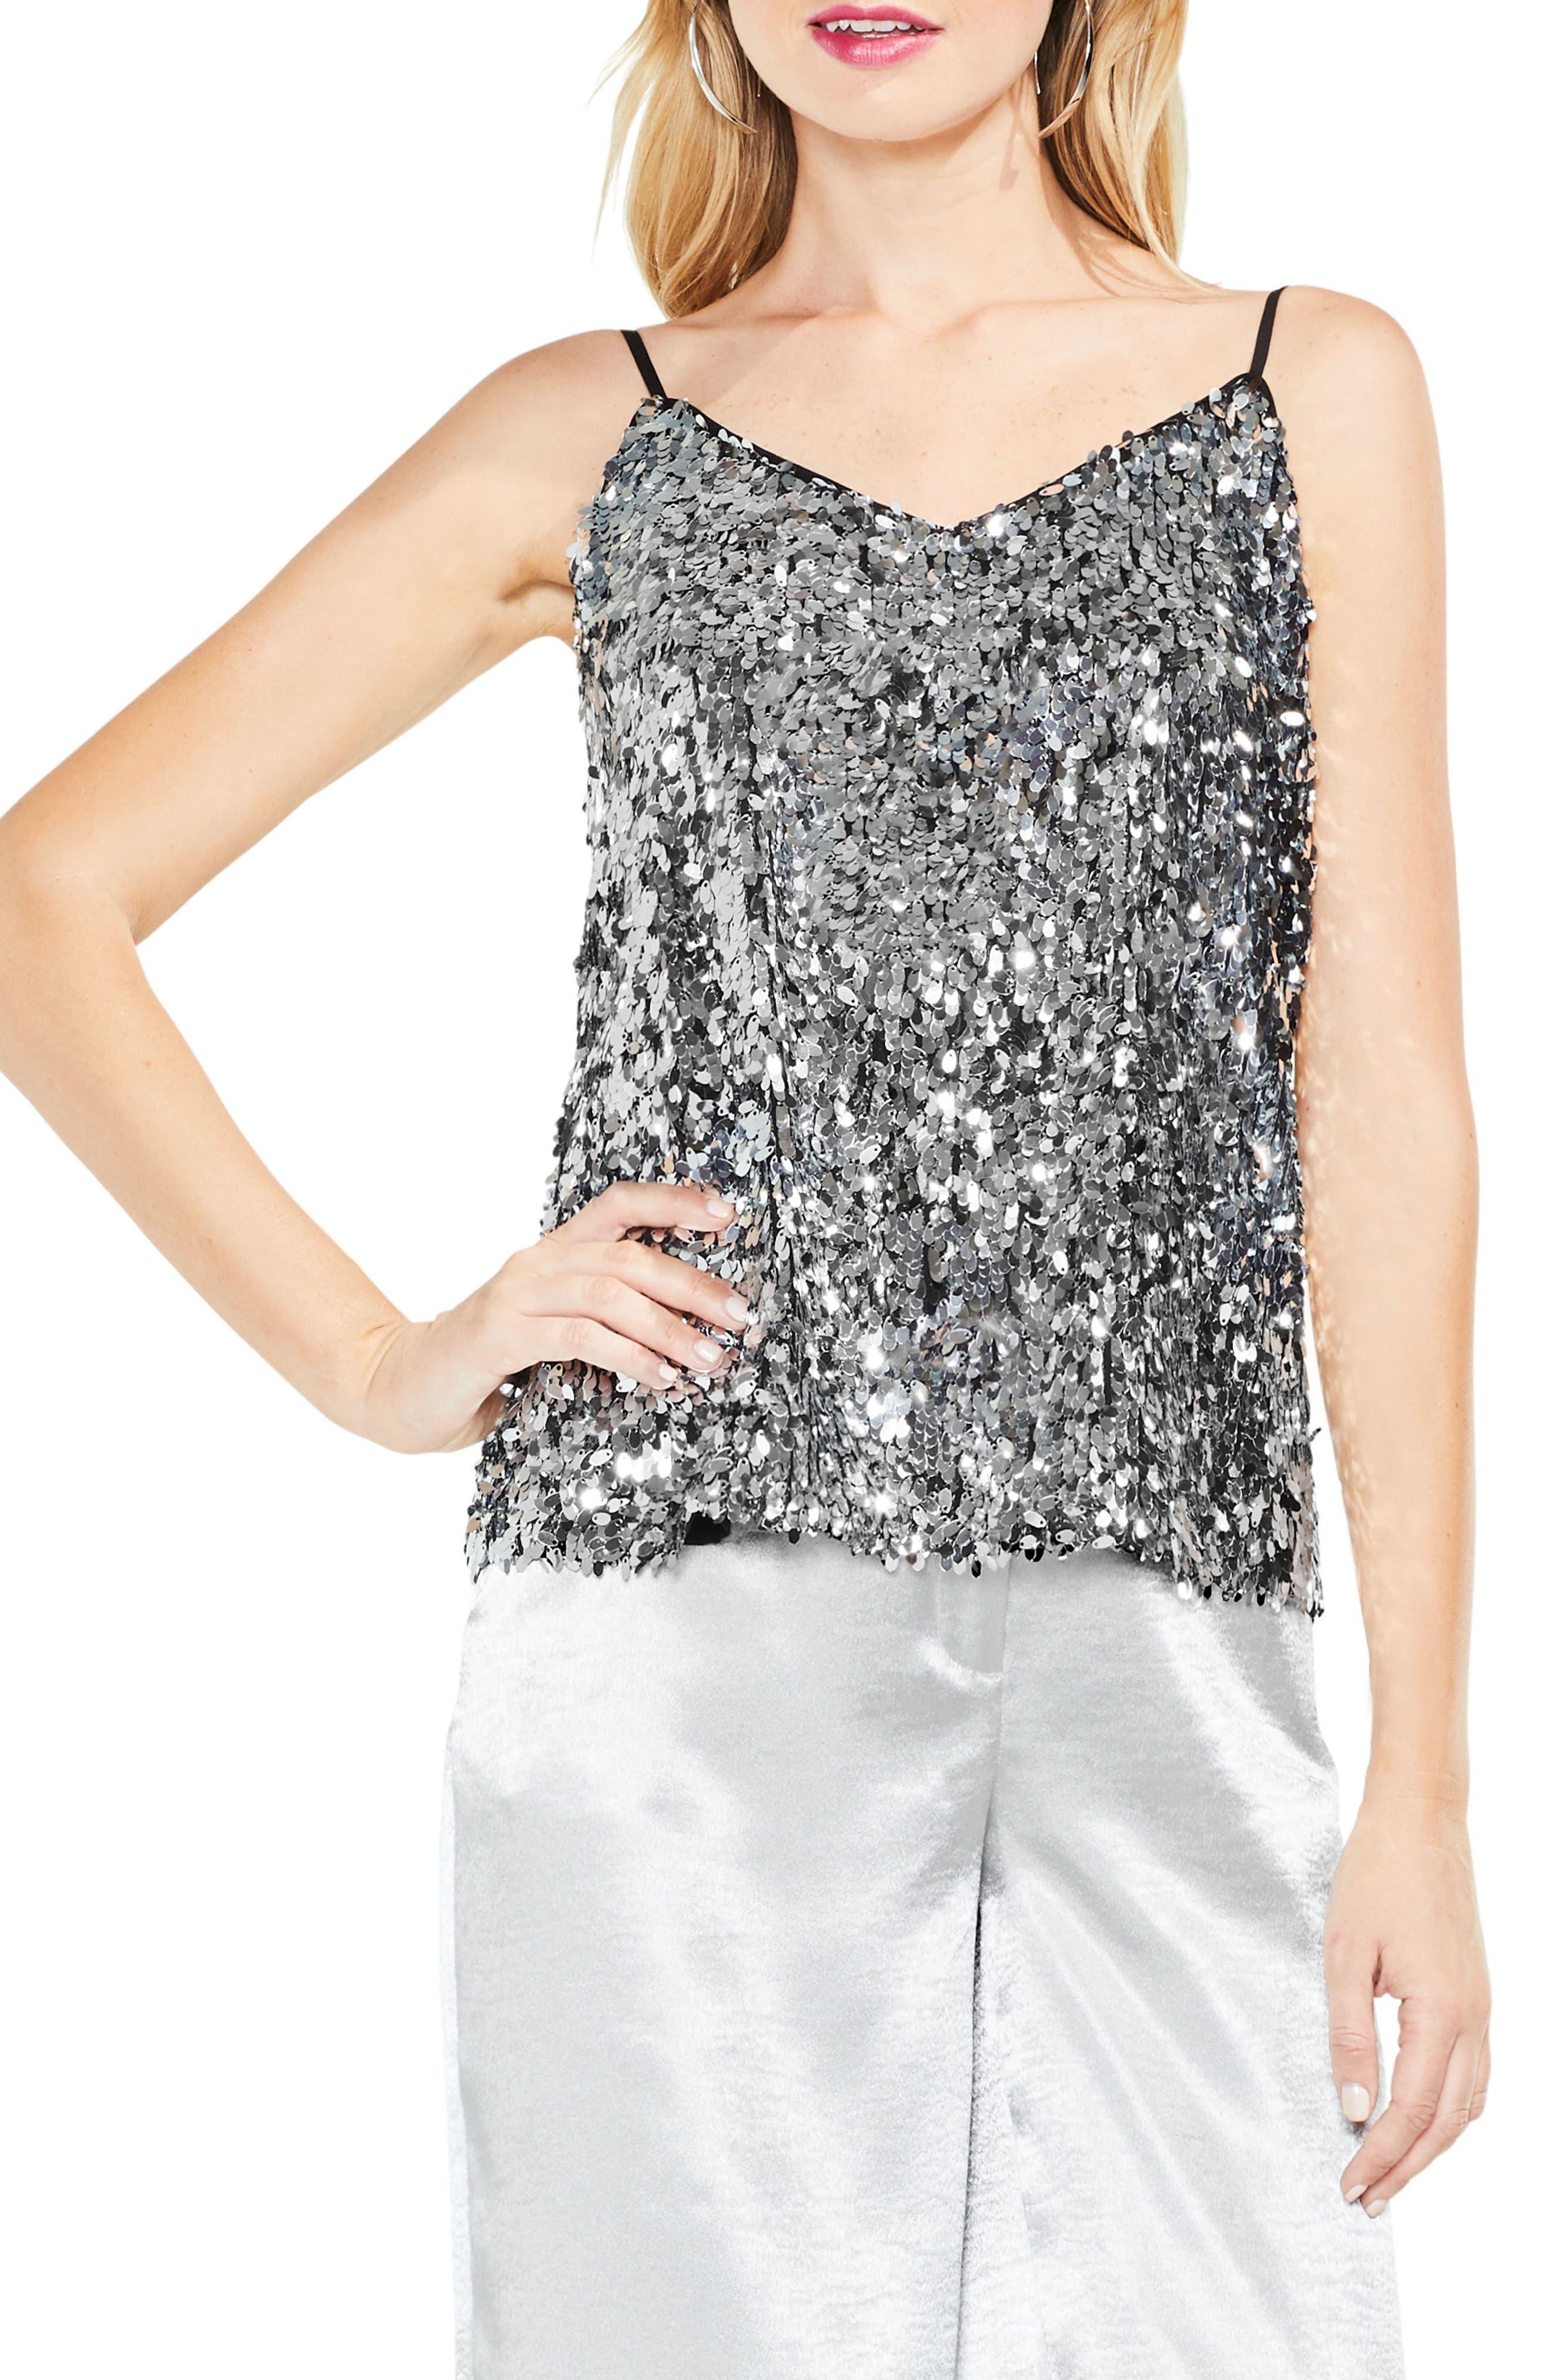 Alternate Image 1 Selected - Vince Camuto Allover Sequin Camisole Top